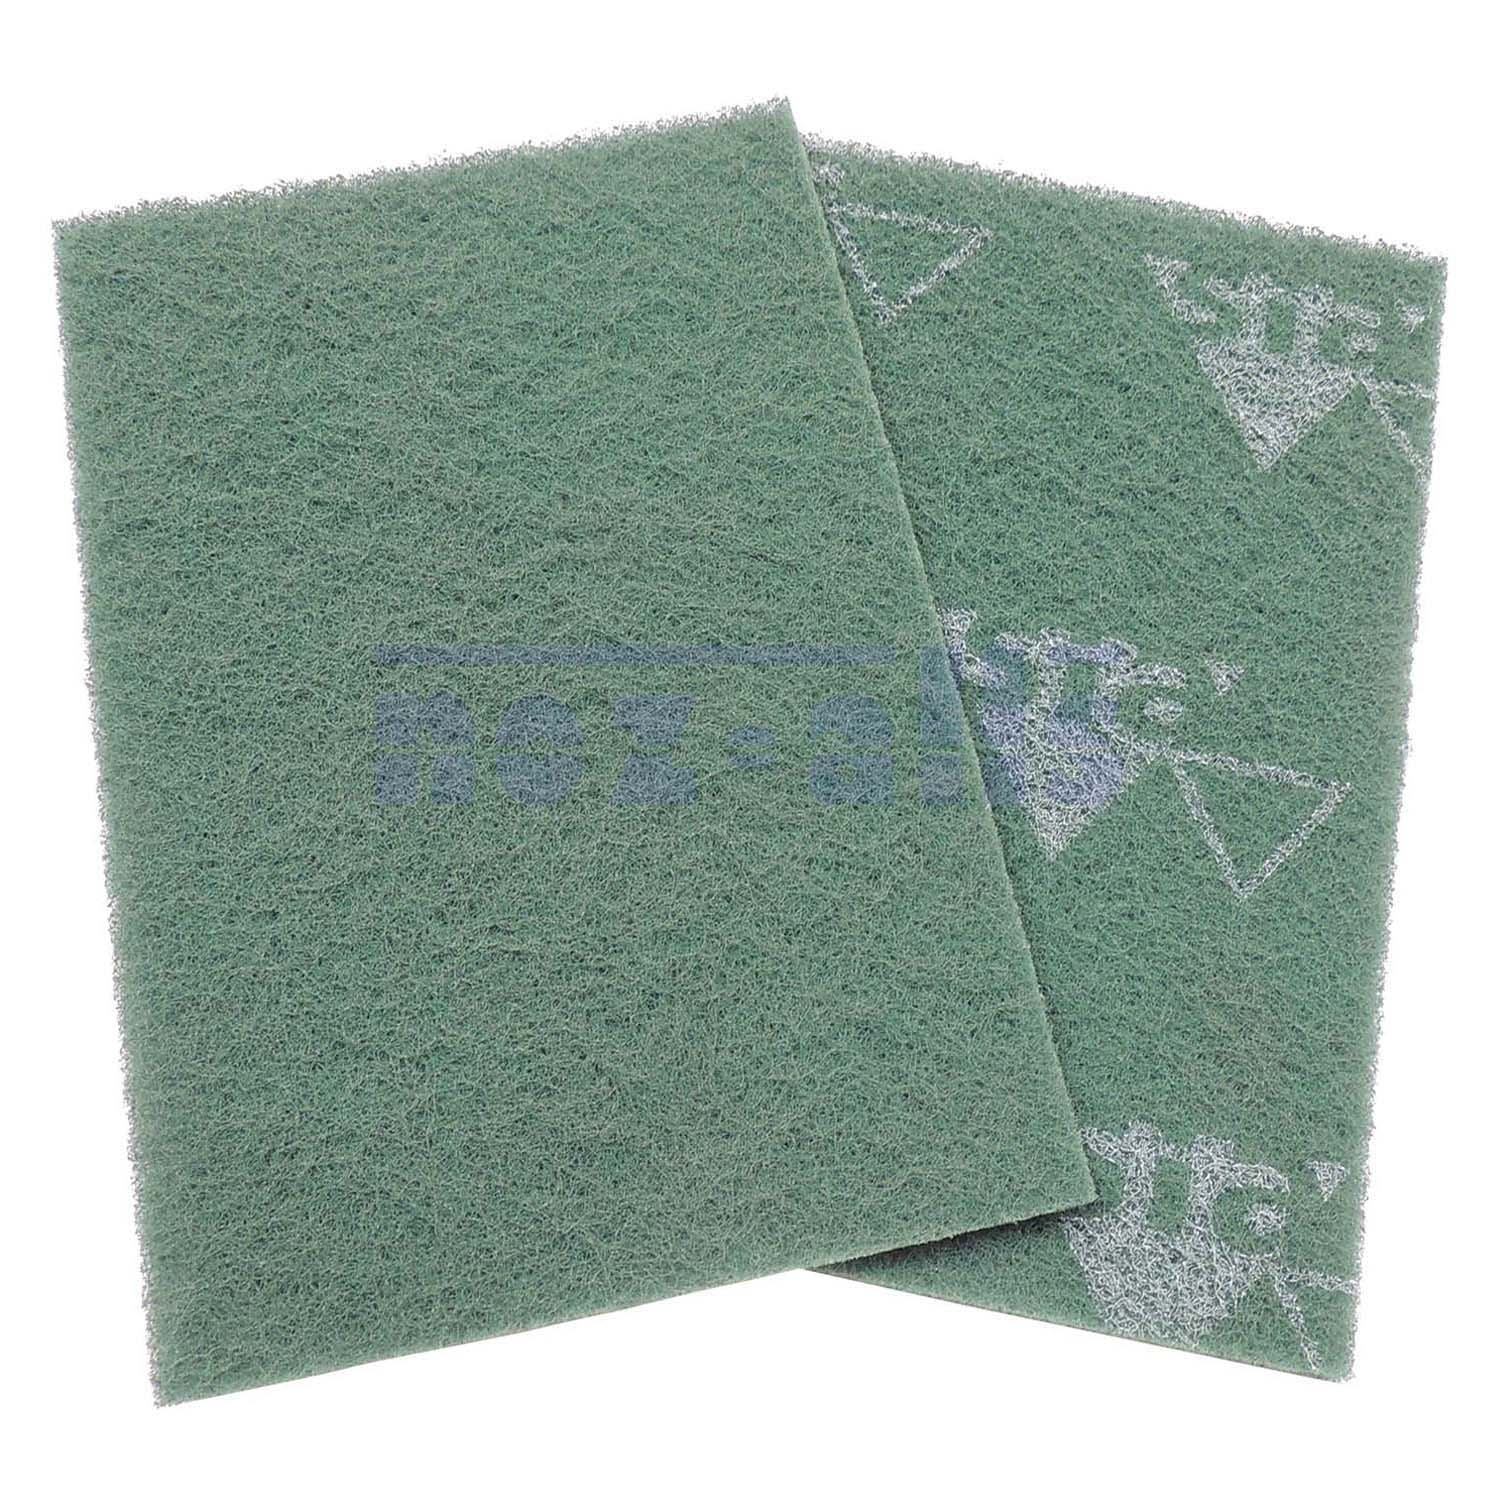 SIA Fleece Green Hand Pads - Cut 100